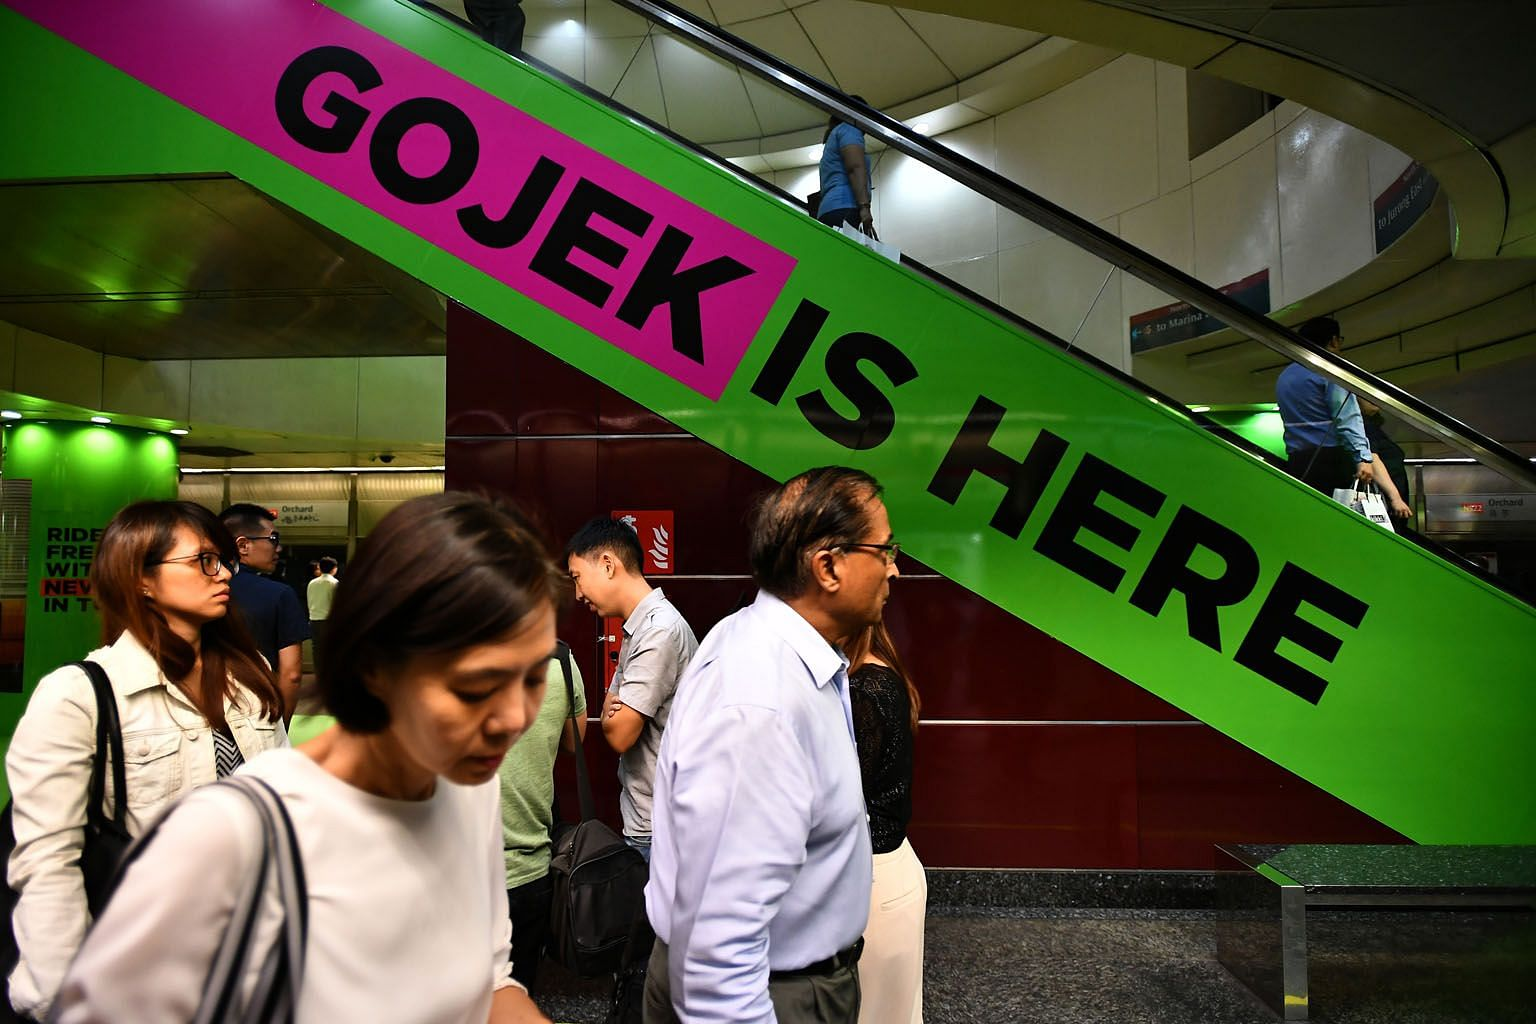 """""""There are no plans for any sort of merger (with Grab), and recent media reports regarding discussions of this nature are not accurate,"""" a Gojek spokesman said."""